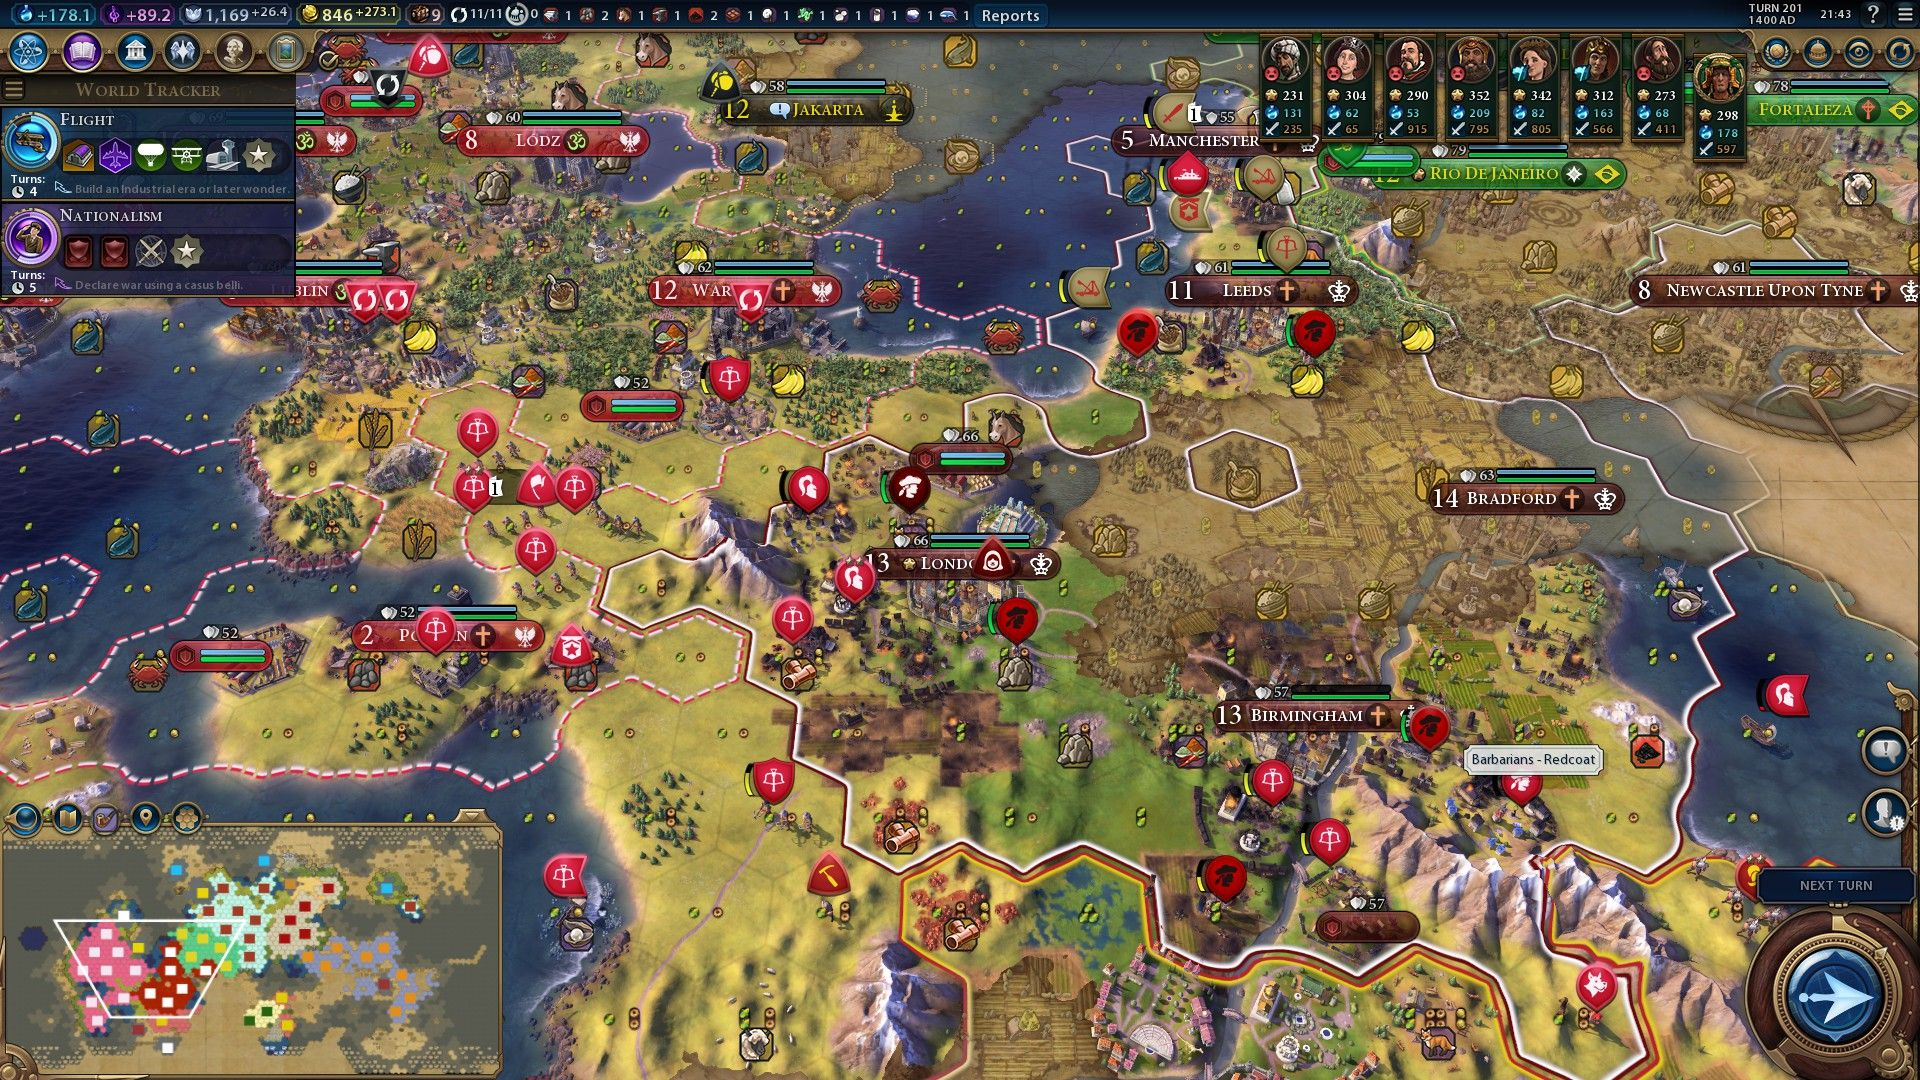 Perfidious Albion: Victoria halts Polish conquest with